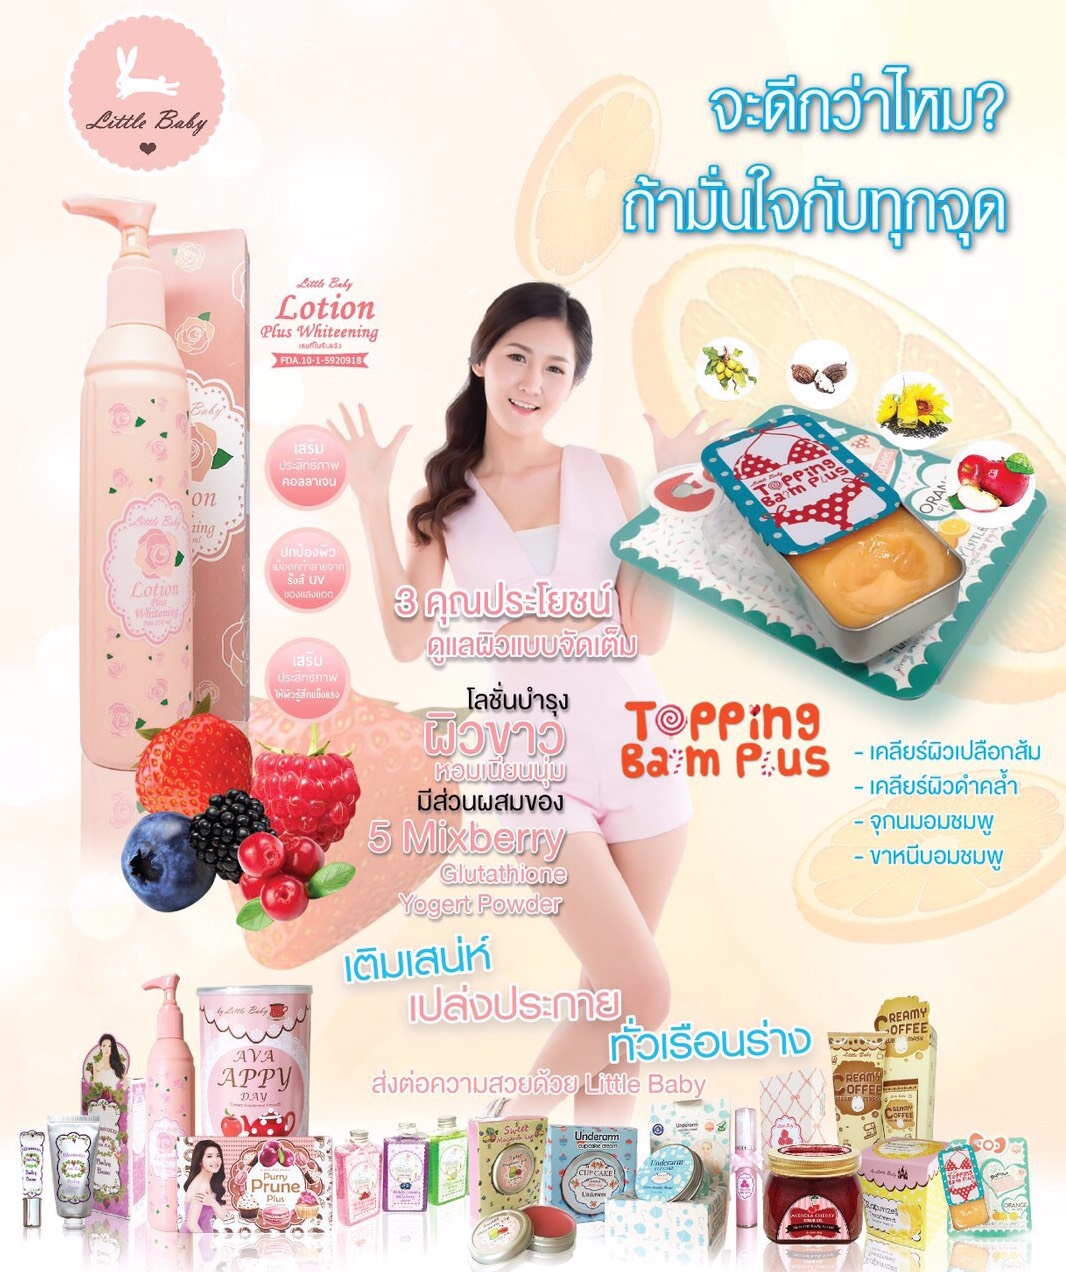 ผลิตภัณฑ์ ลิตเติ้ลเบบี้ อาทิcupcake under arm,sweet lip macaron,Topping balm plus,ava appy day,creamy coffee scrub&mask,blossom my eye,rapunzell treatment,acelora cherry scrub gel,Lotion plus whitening รูปที่ 1